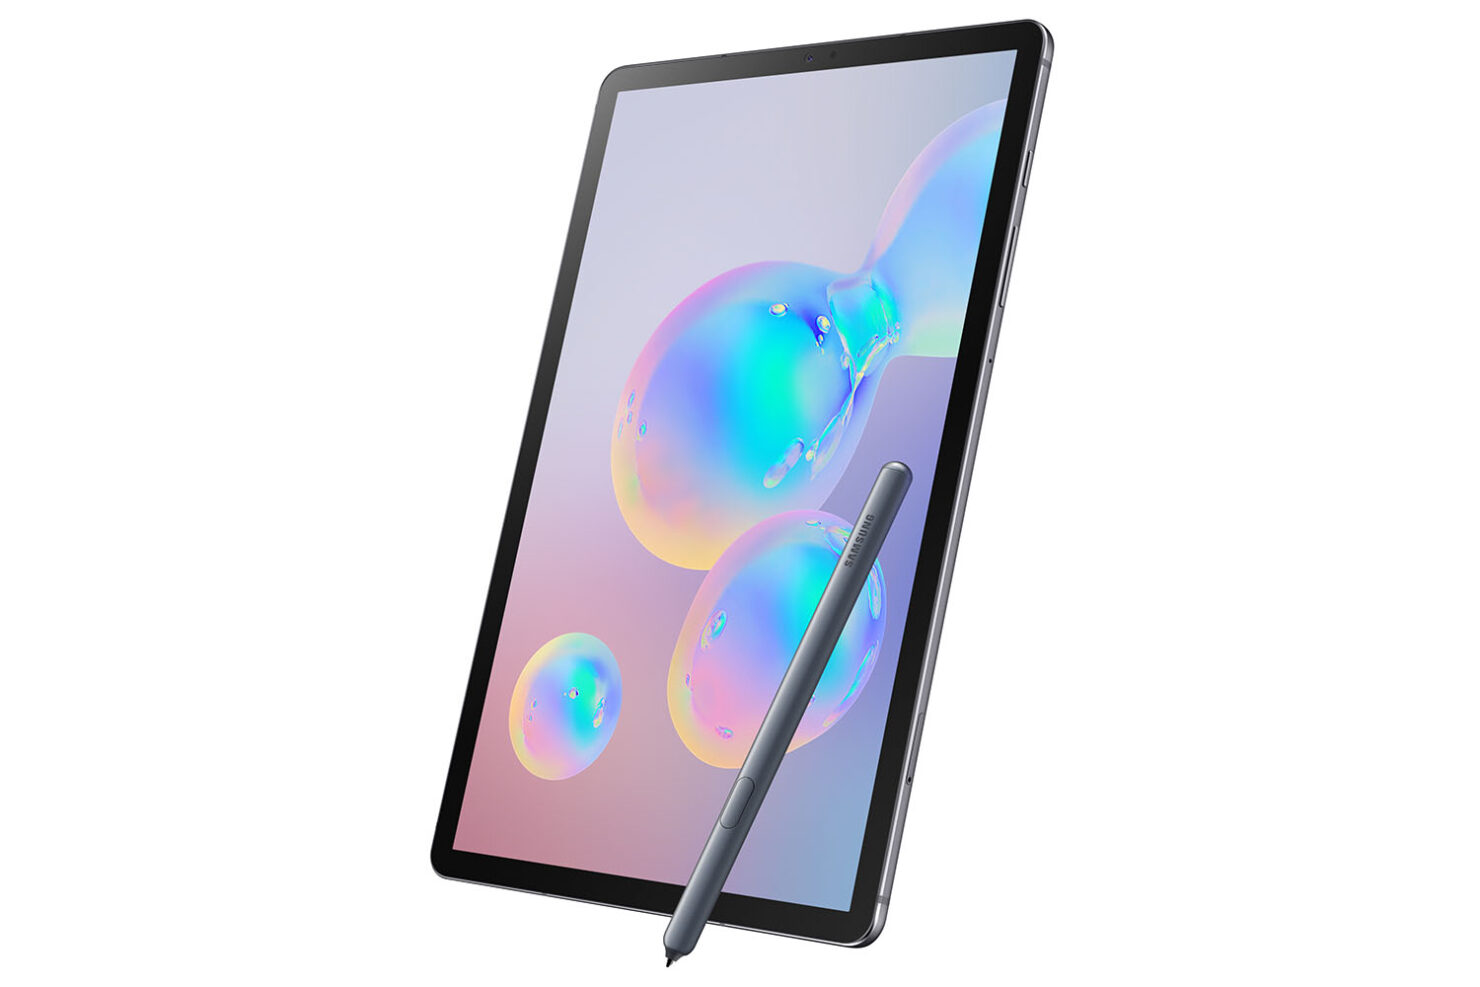 Galaxy Tab S6 from Samsung focuses on increasing your productivity